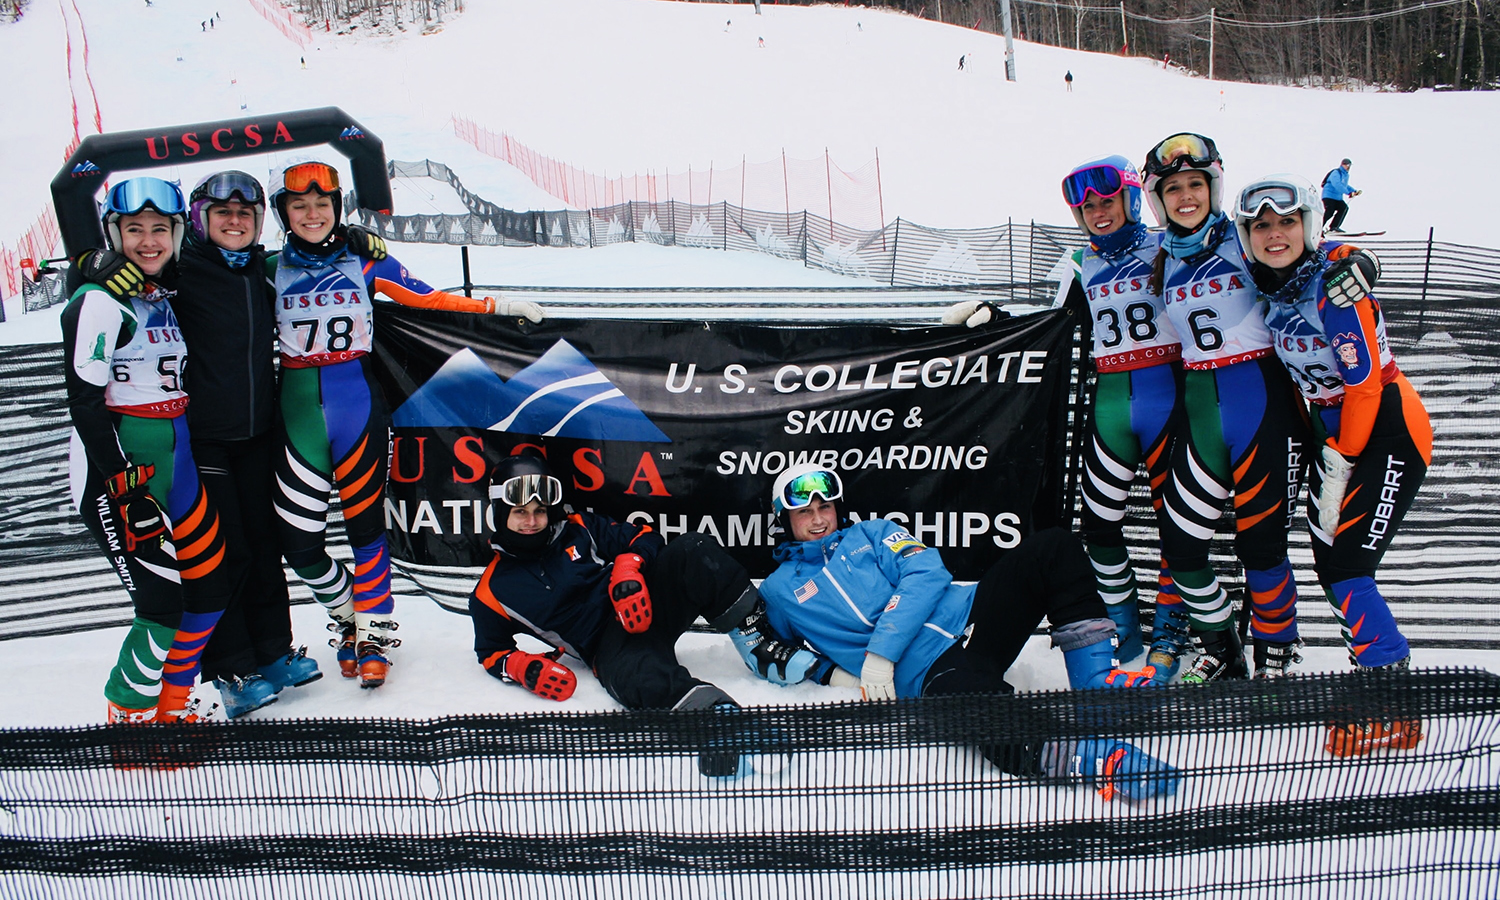 The William Smith Ski team gathers for a photo during USCSA Nationals at Whiteface Mountain in Lake Placid, N.Y. William Smith finished in ninth place overall in the Alpine women's team competition.